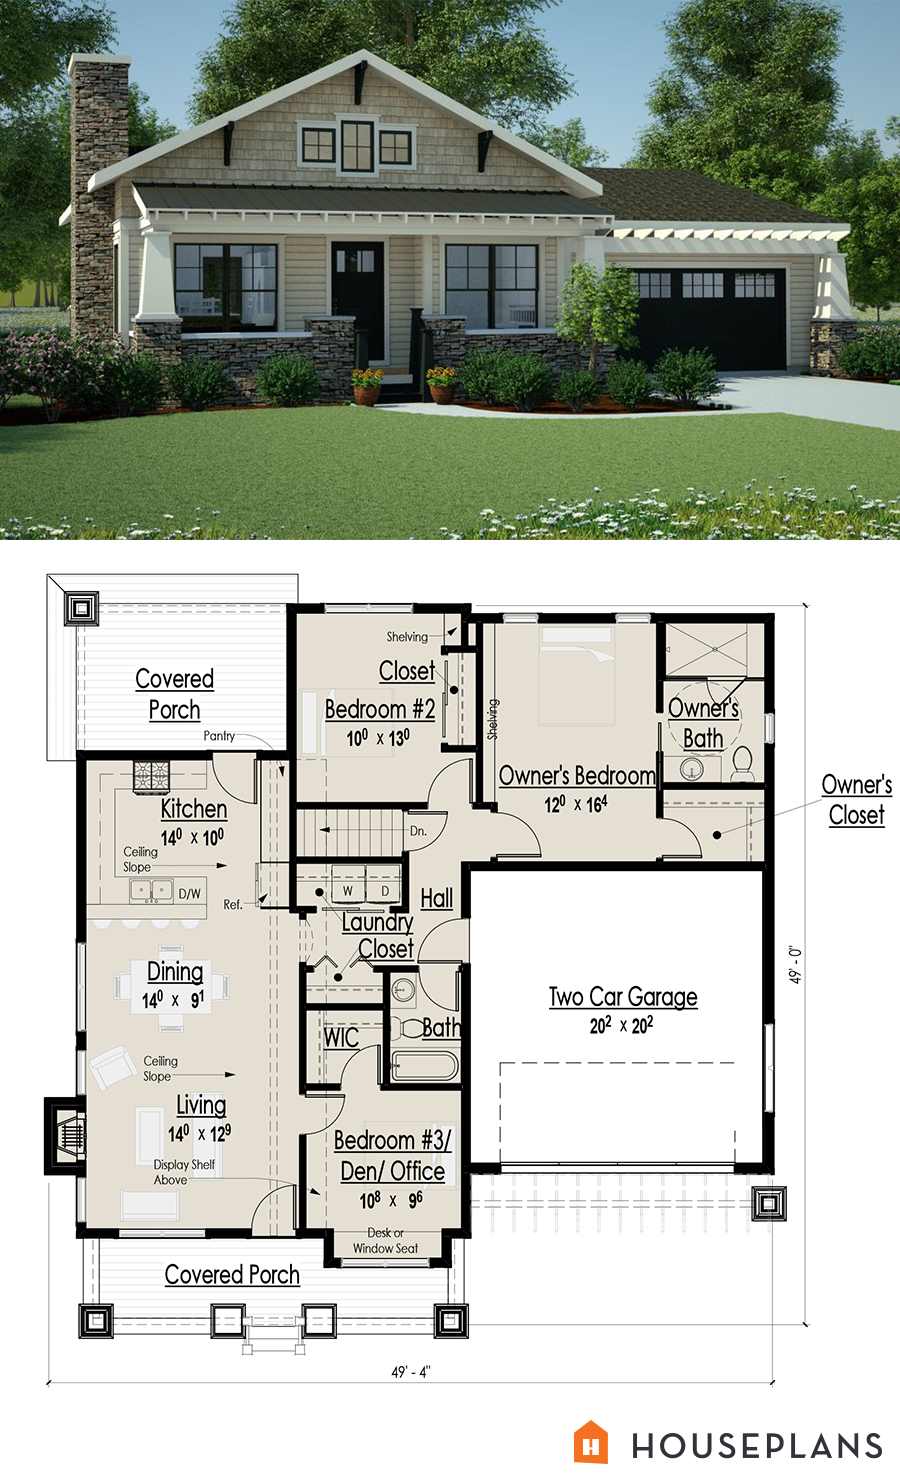 Ranch Style House Plan 3 Beds 2 5 Baths 1625 Sq Ft Plan 126 143